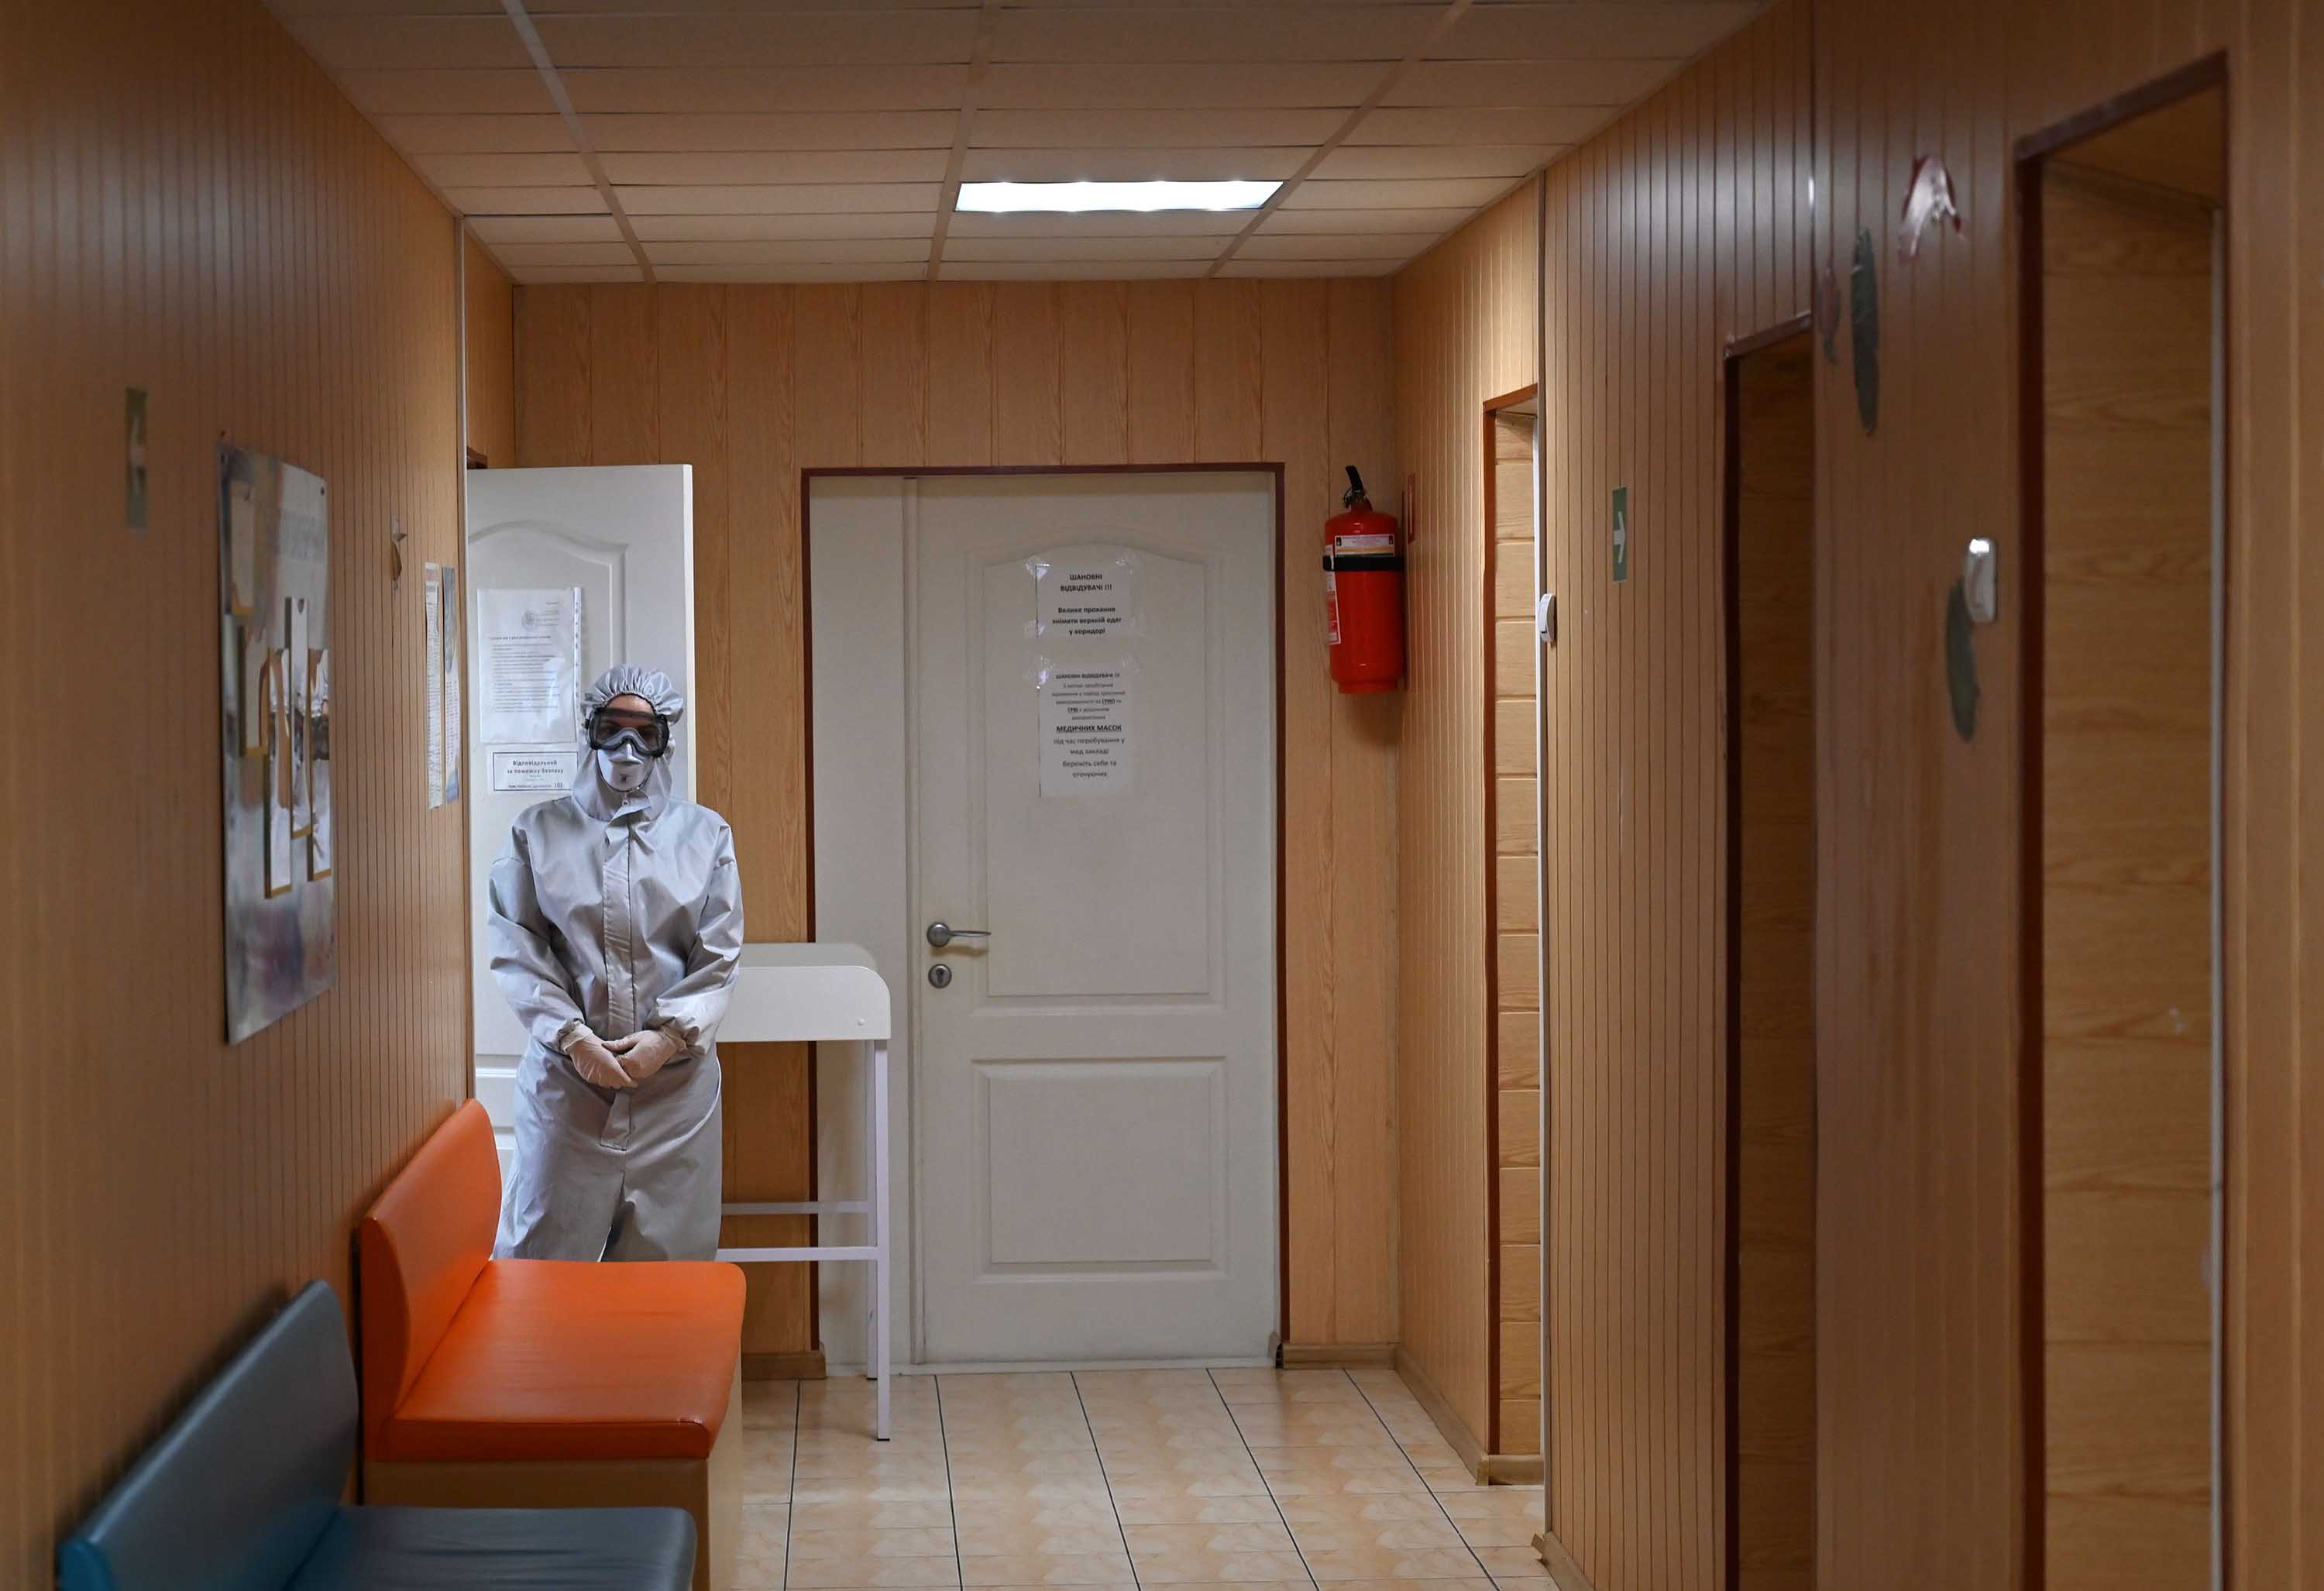 A medical worker waits for patients inside a clinic in the Ukrainian town of Irpin on April 15.